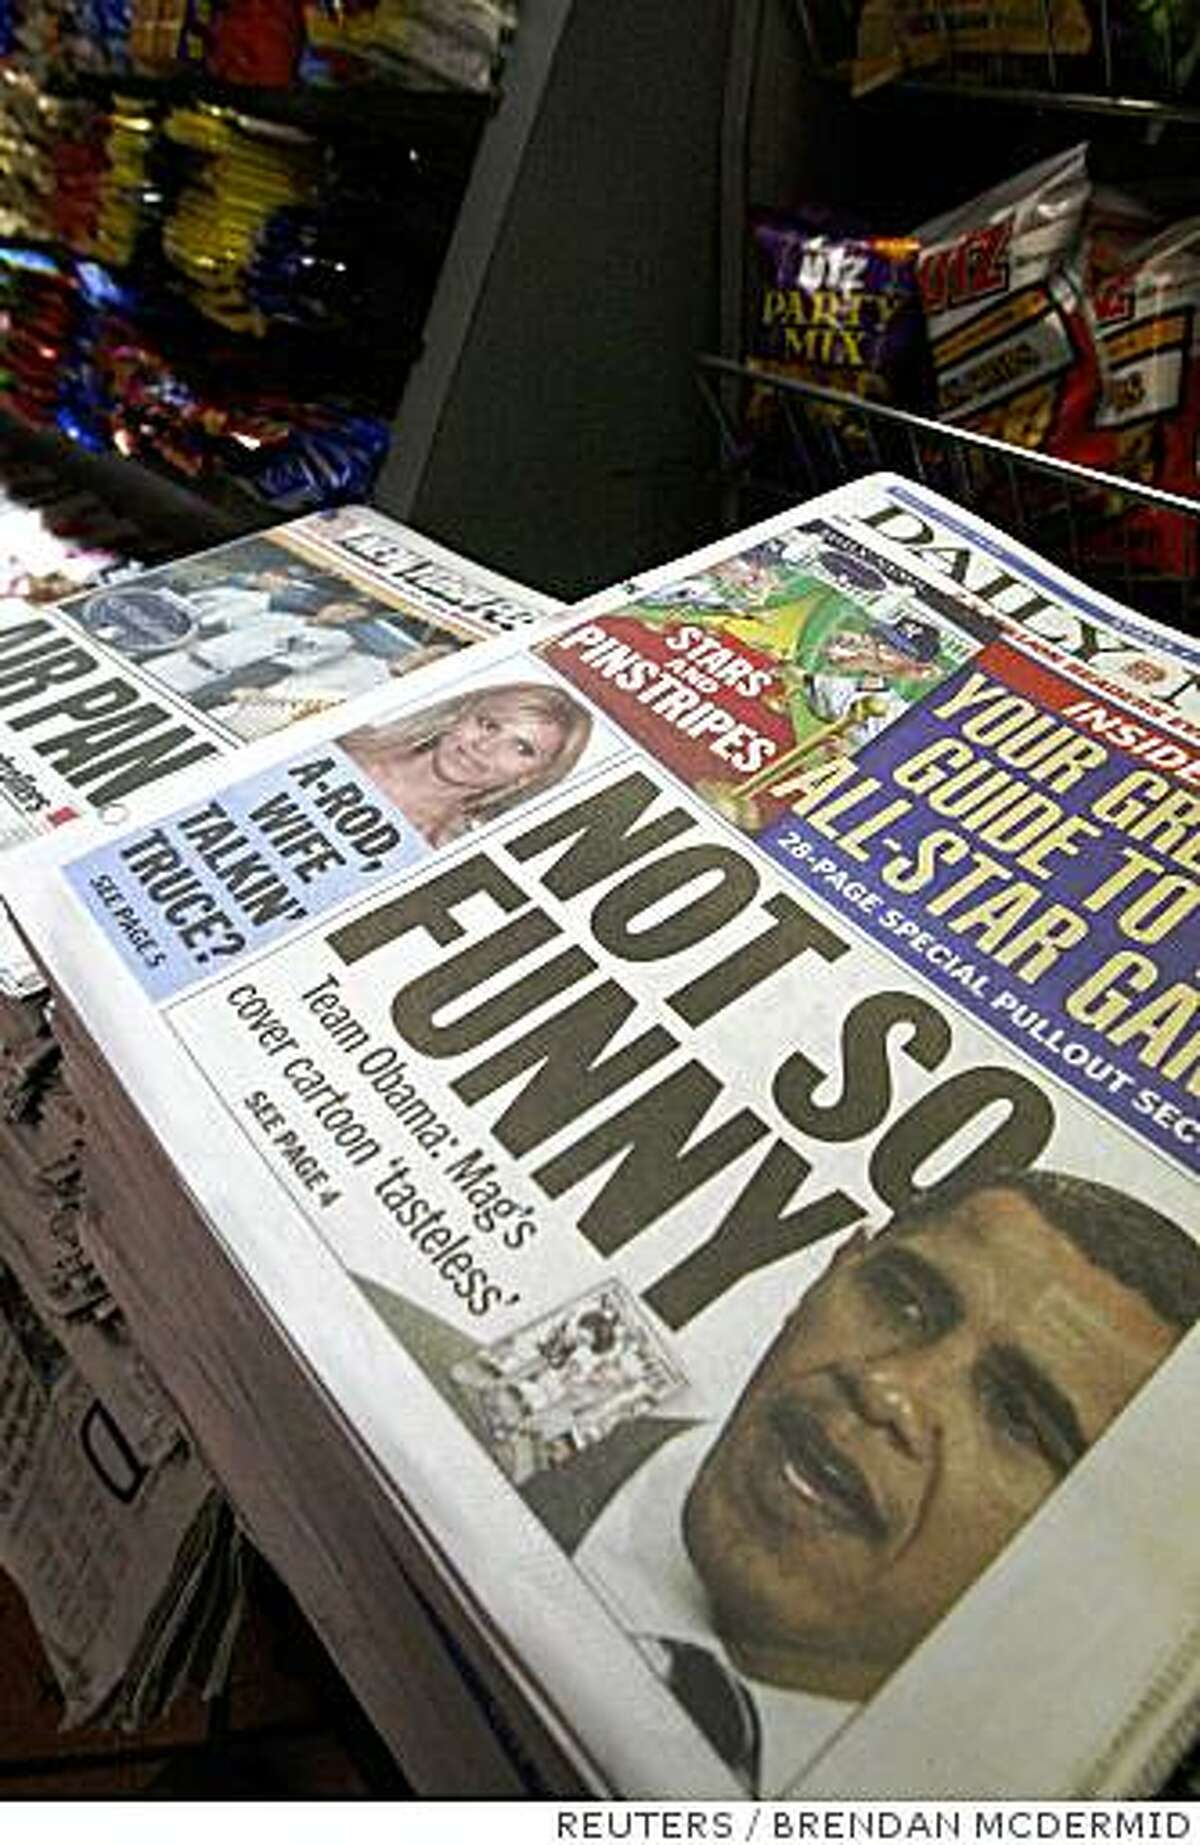 """A copy of the New York Daily News displays a story about the """"The New Yorker"""" magazine cover which featured an illustration of Barack Obama with a turban and robe, at New York's Grand Central Station, July 14, 2008. The magazine pokes fun at smears directed at Barack Obama, but the Democratic presidential candidate isn't laughing. The cover portrays the Illinois senator in a turban and robe bumping fists with wife Michelle, who sports an Afro, a rifle and military garb. In the background, an American flag burns in the fireplace. REUTERS/Brendan McDermid (UNITED STATES)"""